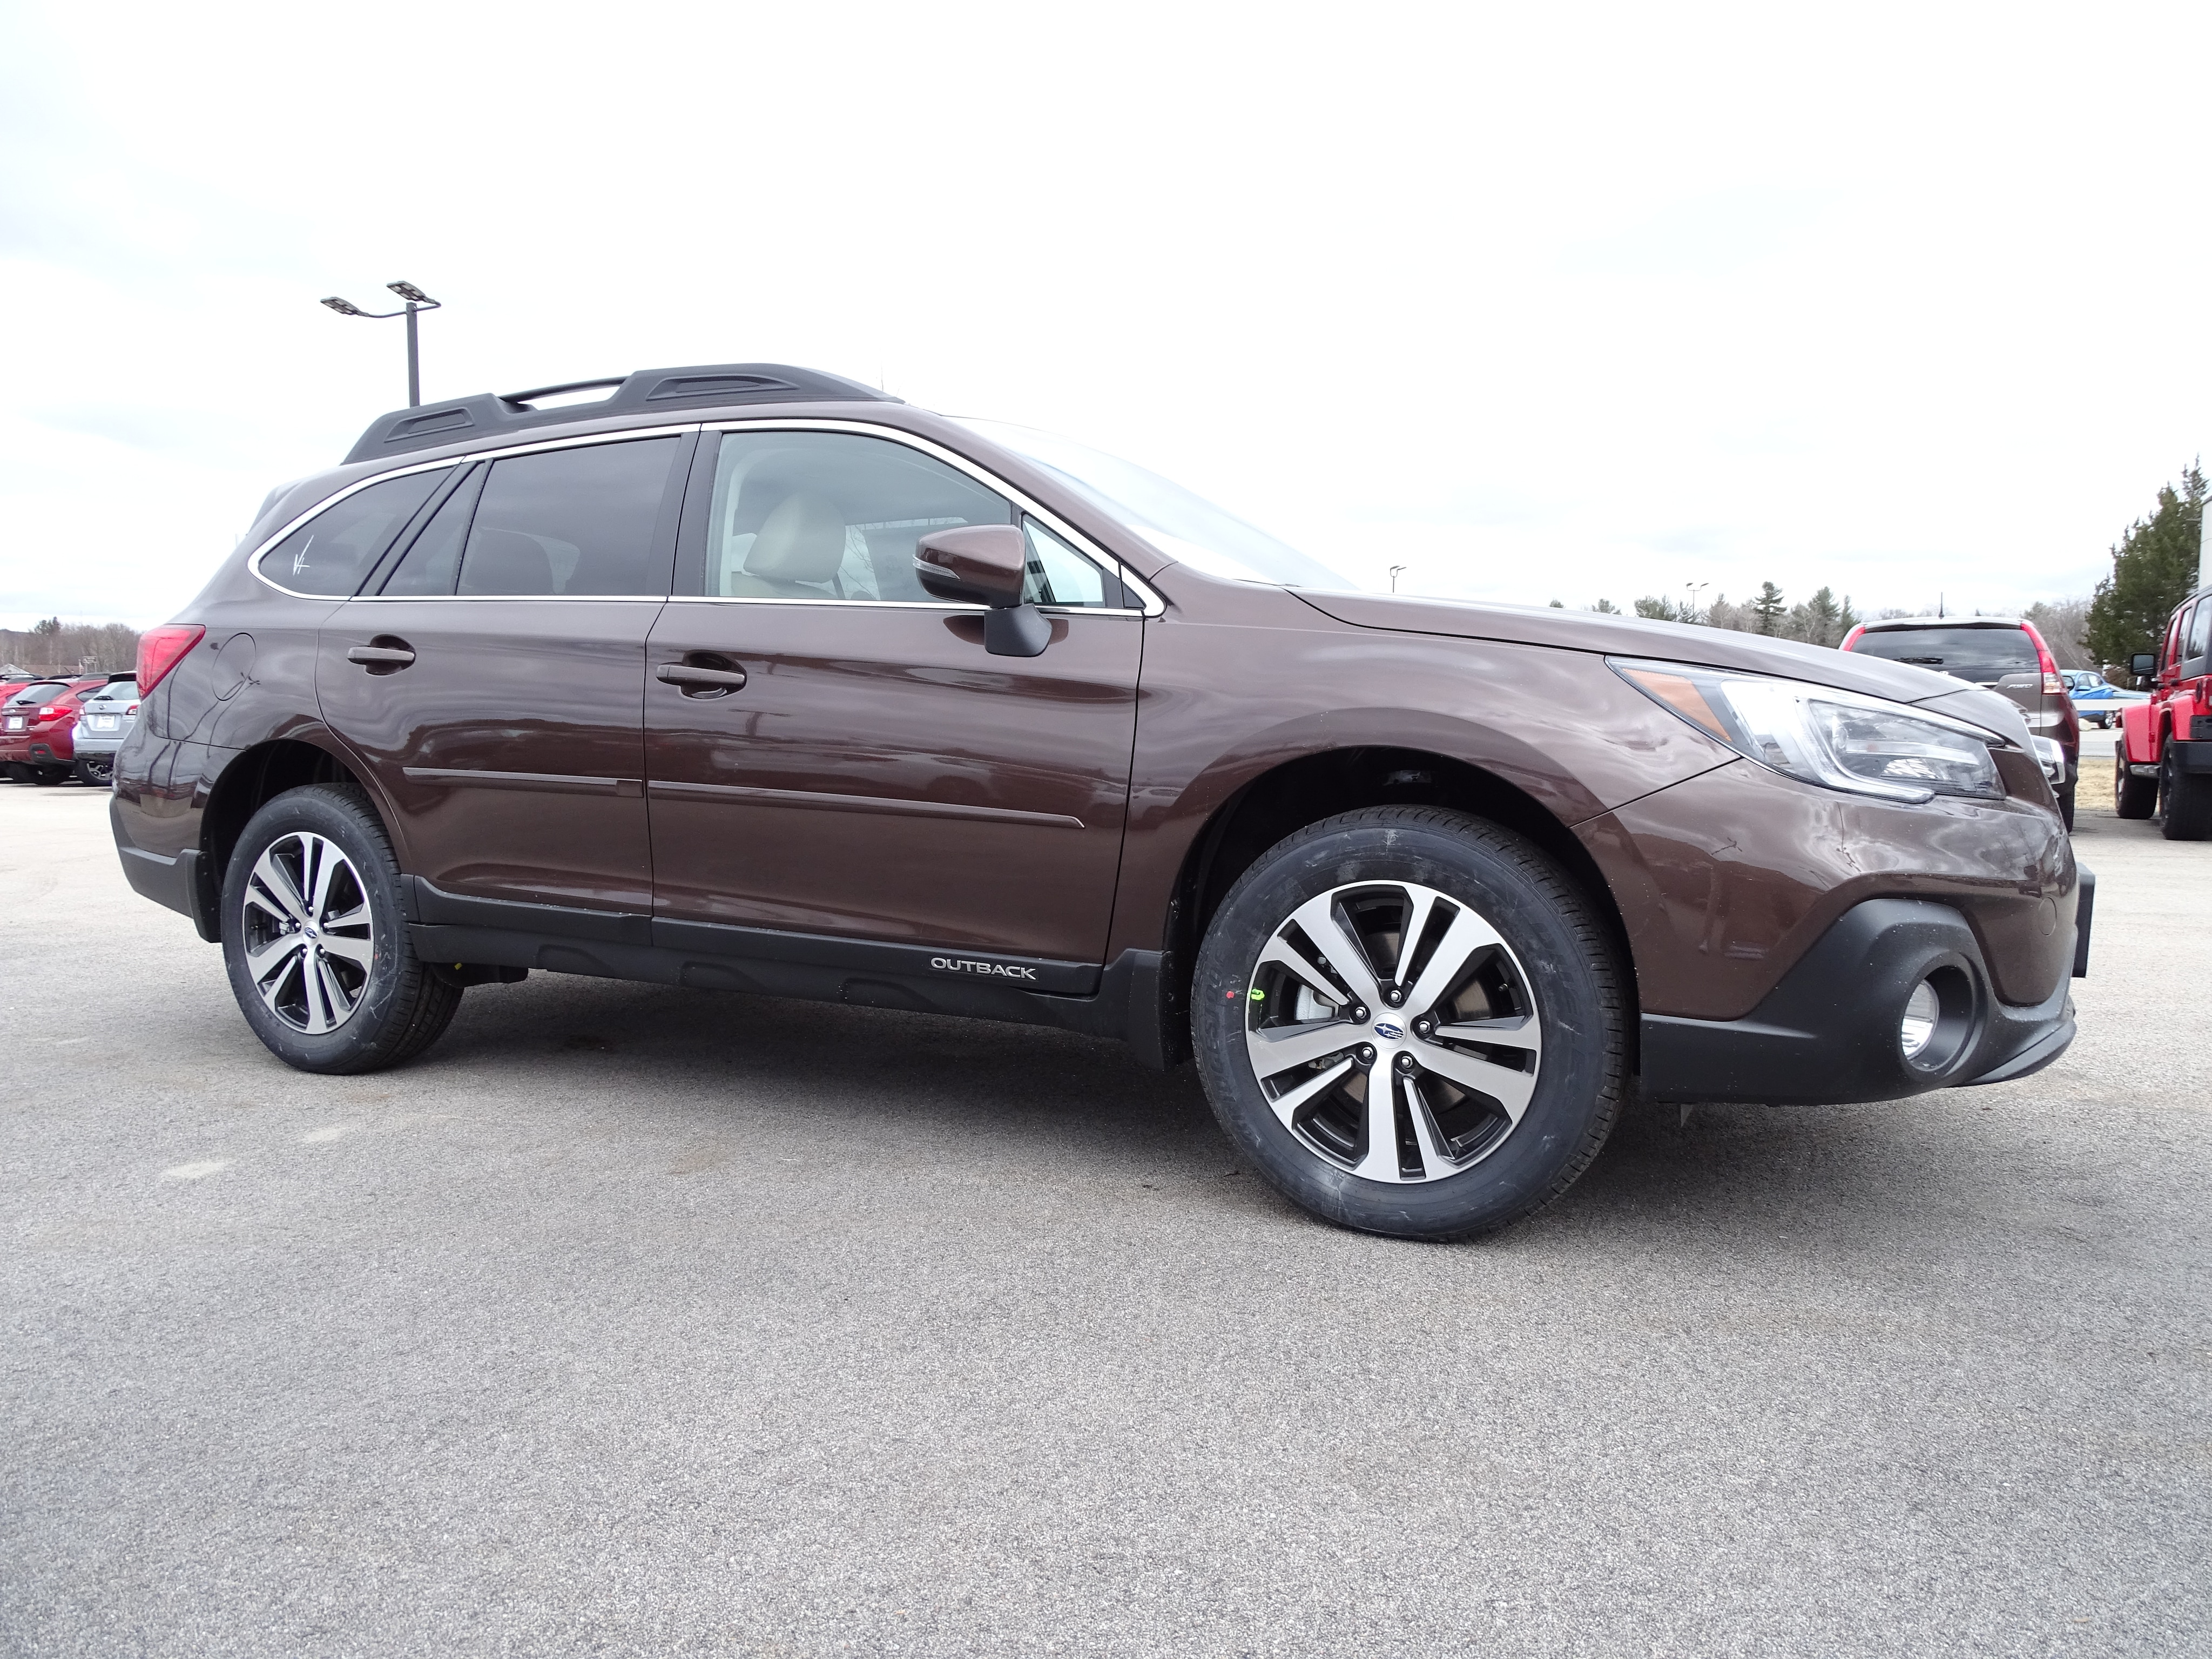 2019 Subaru Outback For Sale Keene New Hampshire | VIN